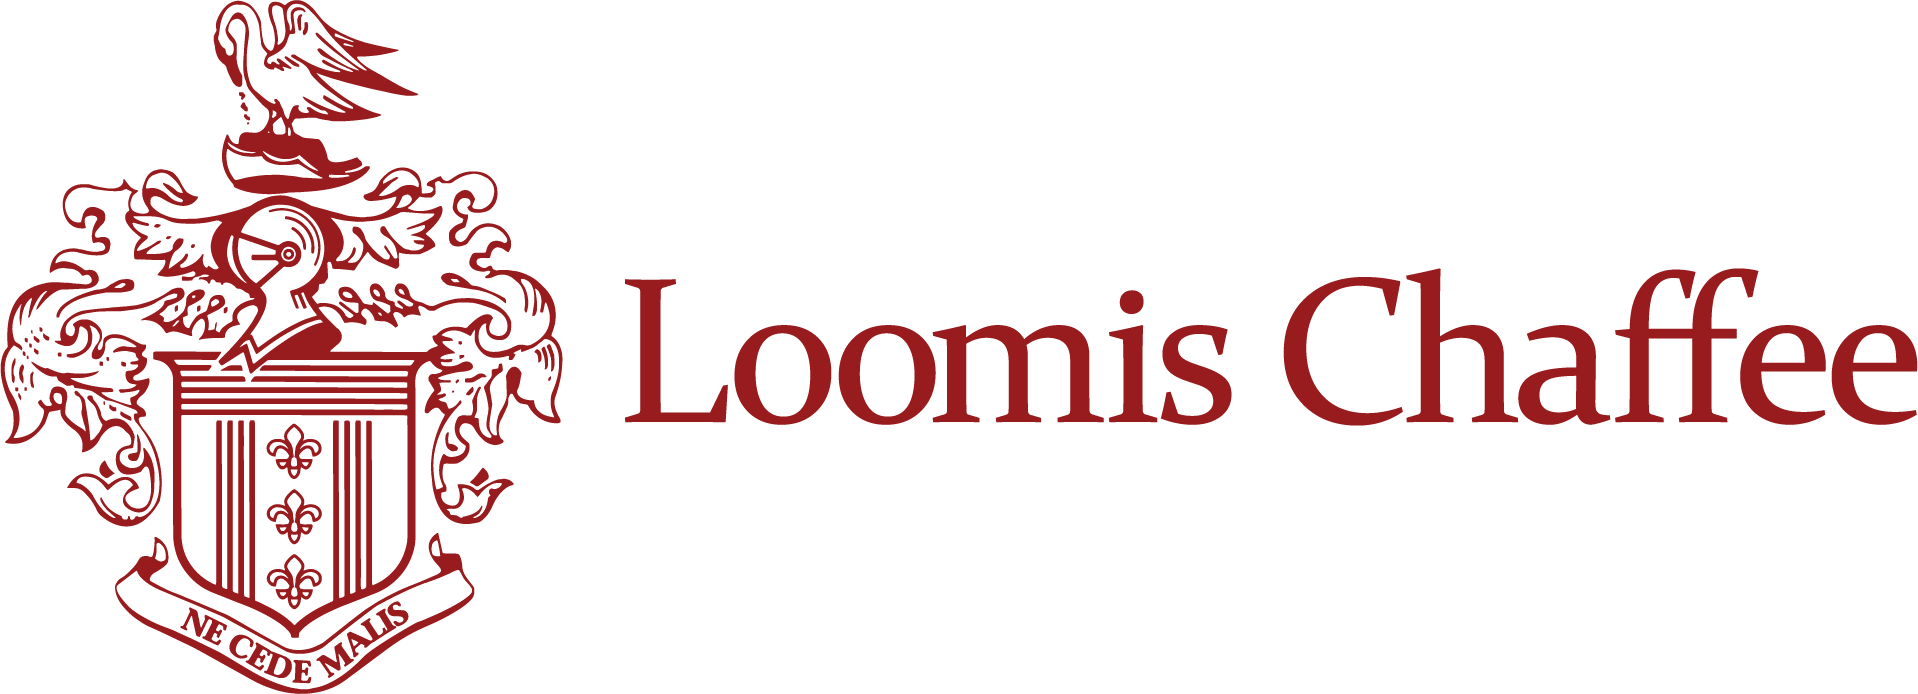 Loomis Chaffee Wordmark and Coat of Arms